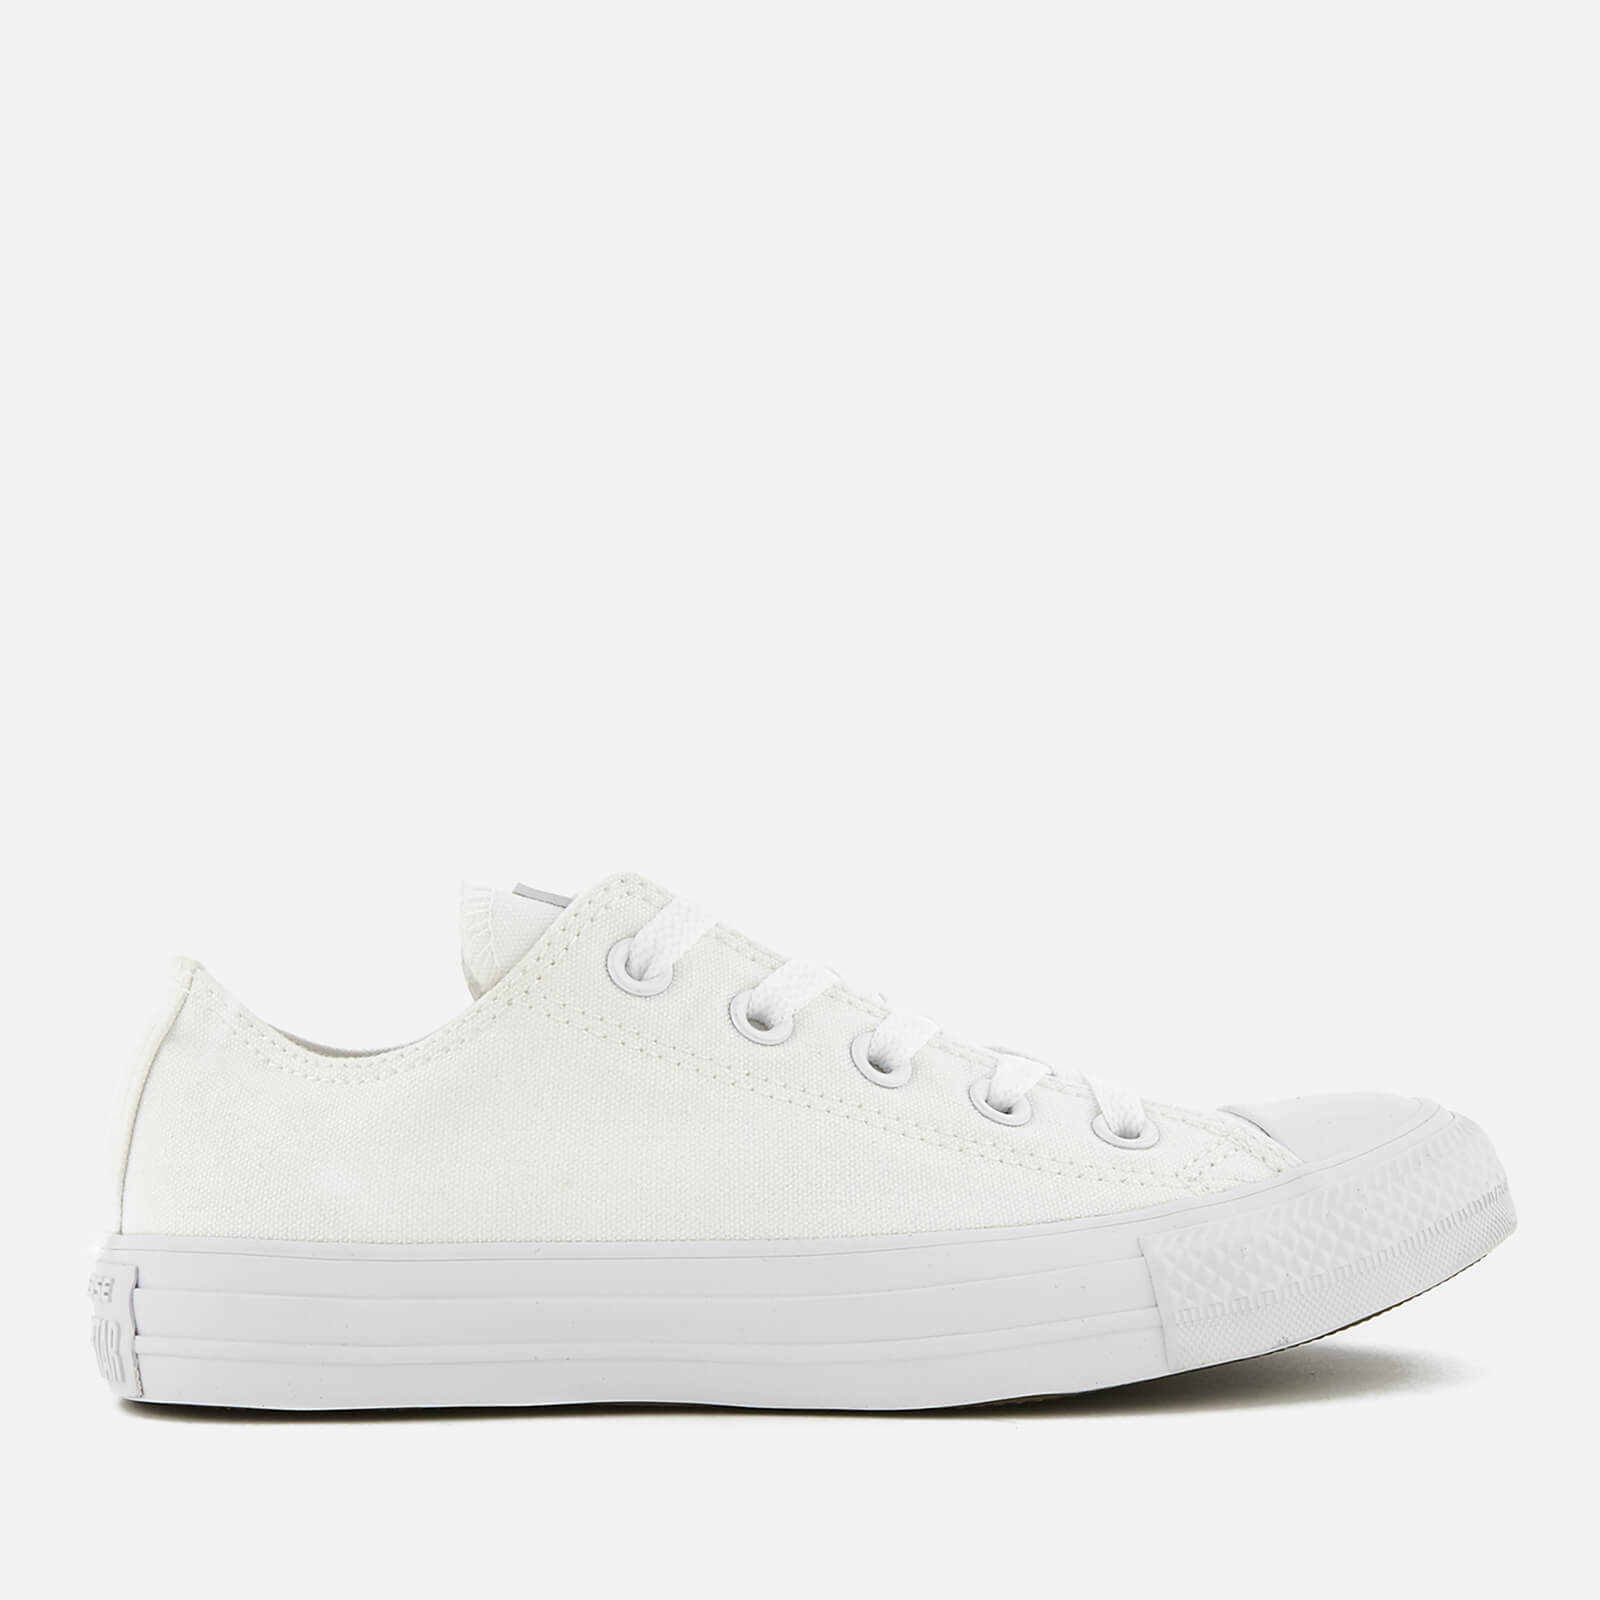 56e2cc0b83b9 Converse Chuck Taylor All Star Ox Canvas Trainers - White Monochrome Mens  Footwear